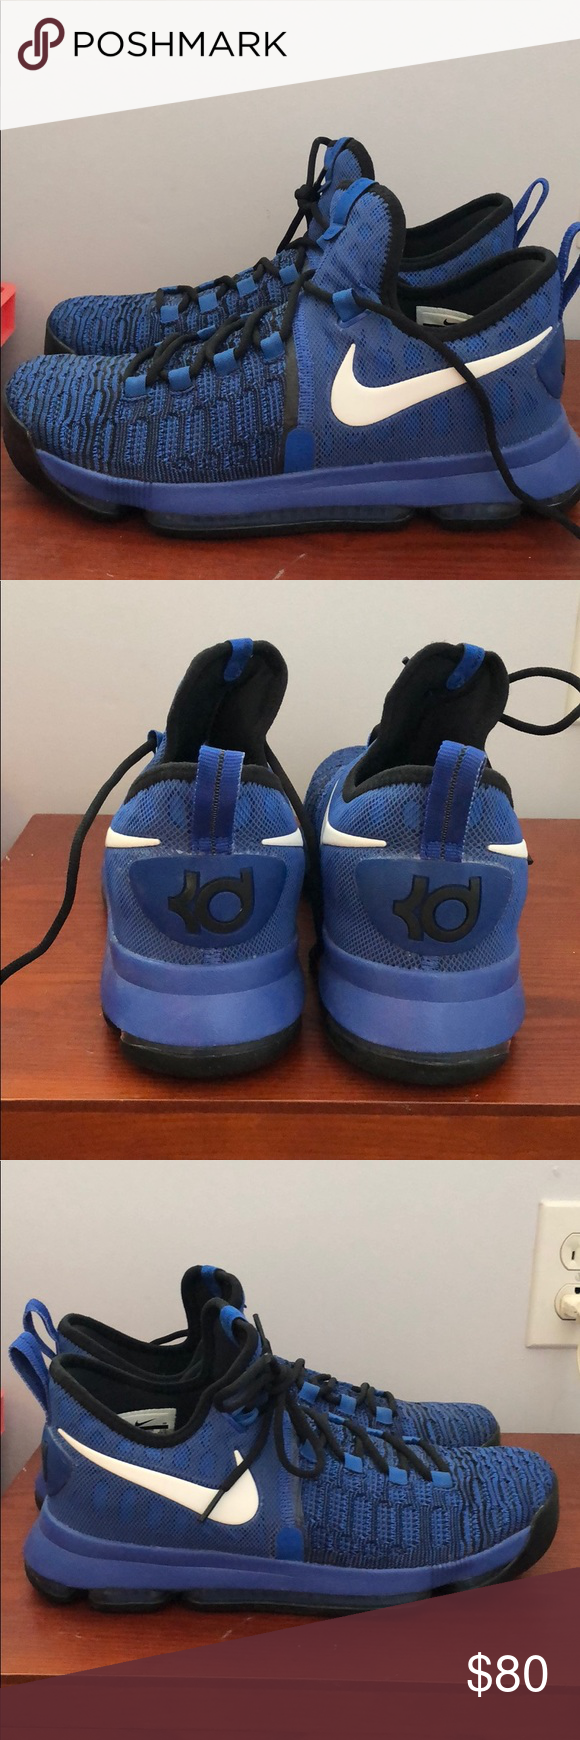 best cheap b0368 349d3 Nike Kevin Durant shoes NIKE Kevin Durant shoes blue, size 9.5, barely worn Nike  Shoes Sneakers